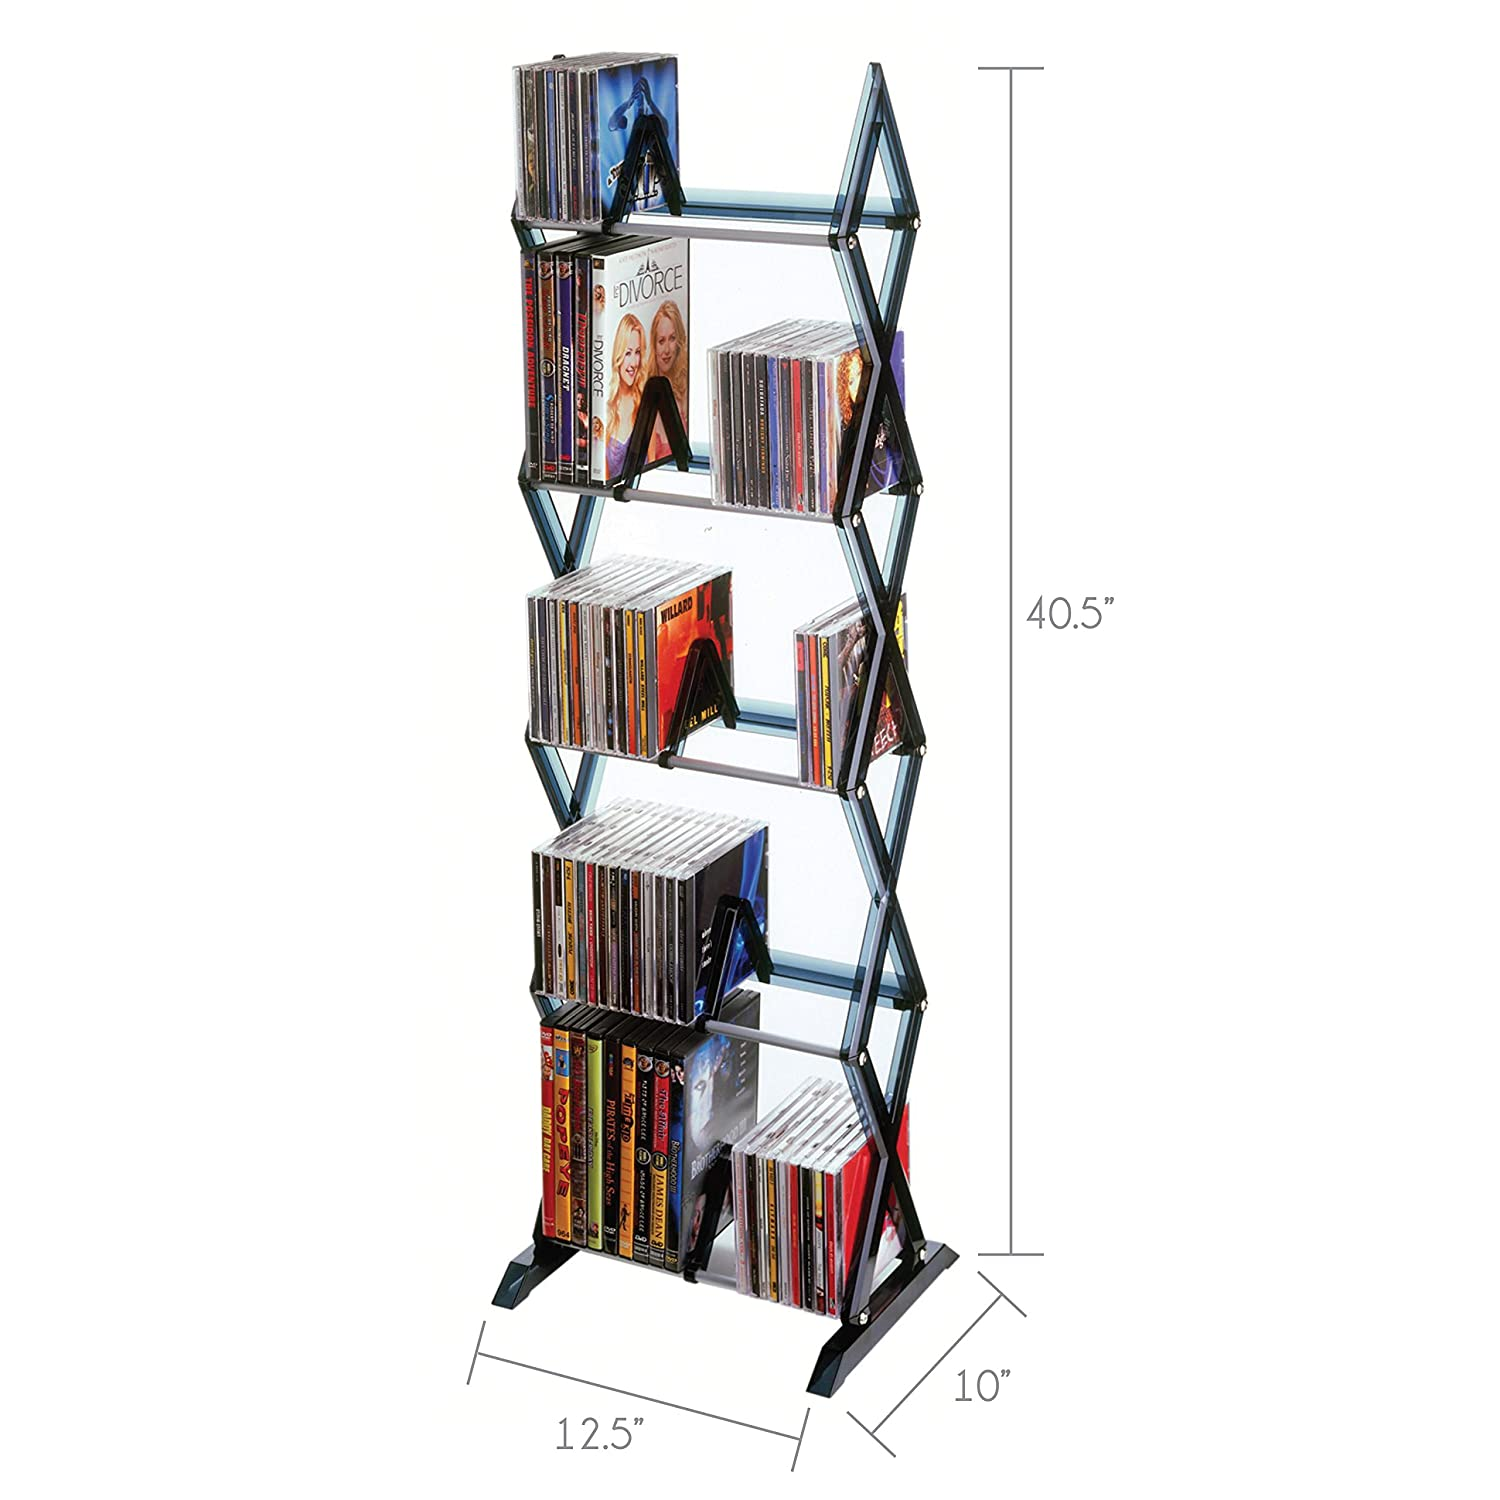 Amazon.com: CD and DVD Cases, Racks and Storage